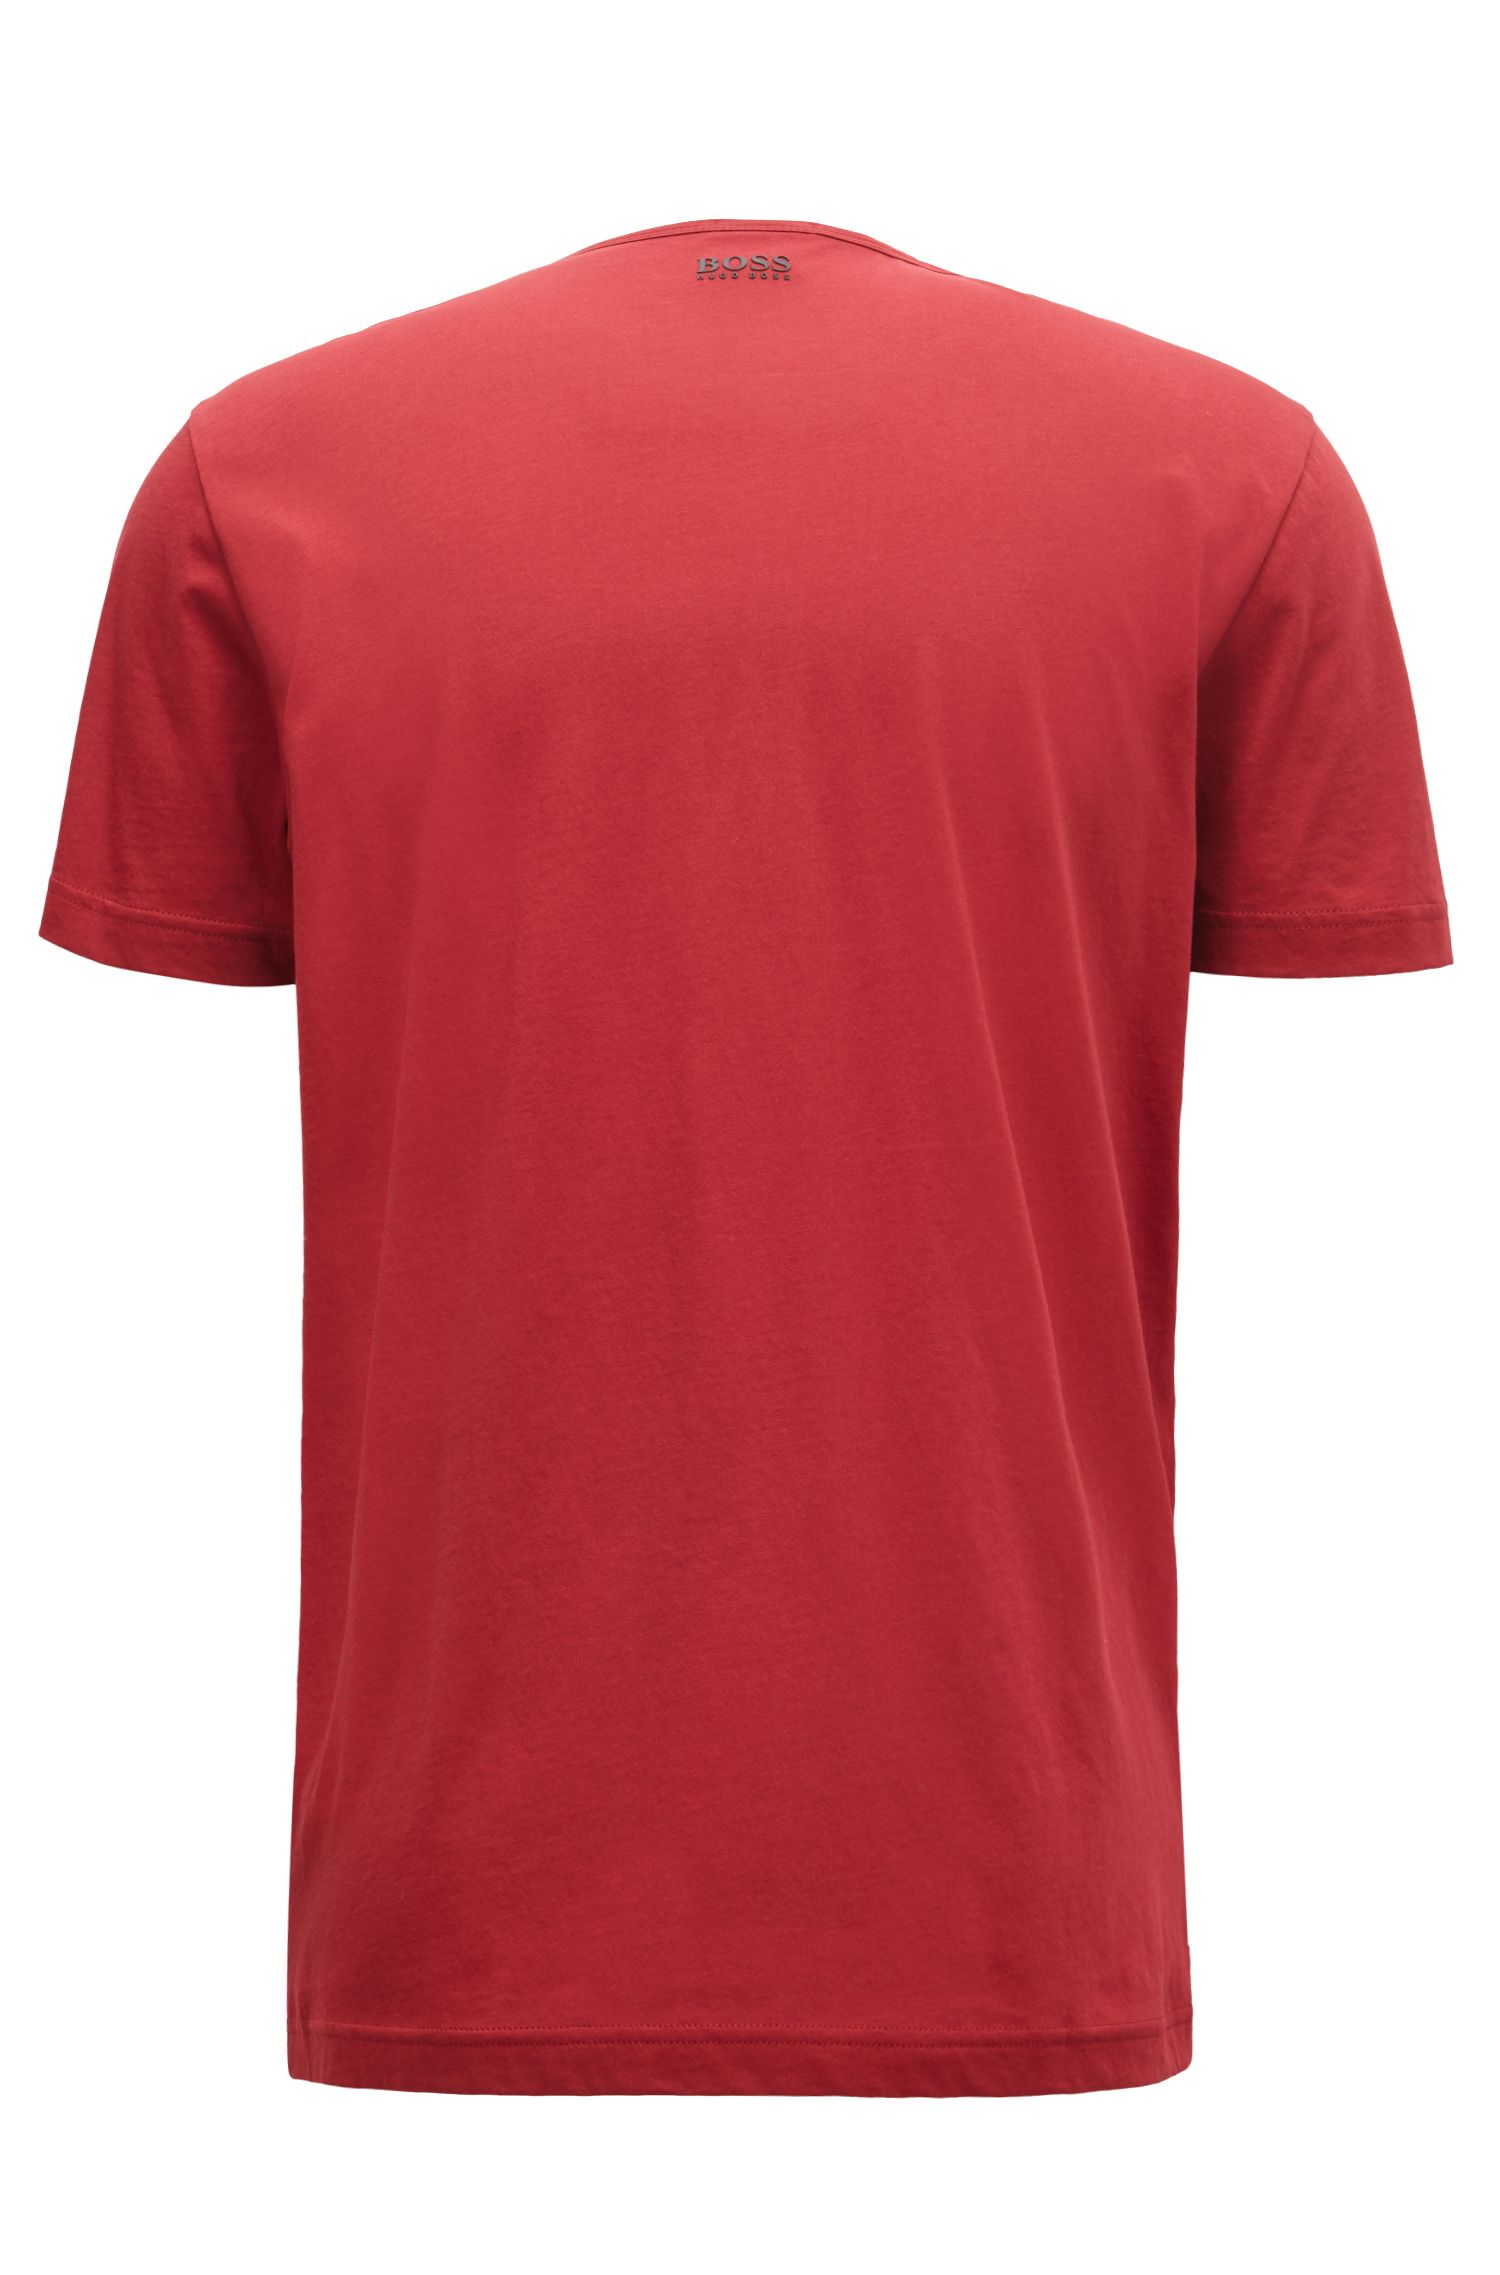 Short-sleeved T-shirt in cotton with graphic logo print, Dark Red